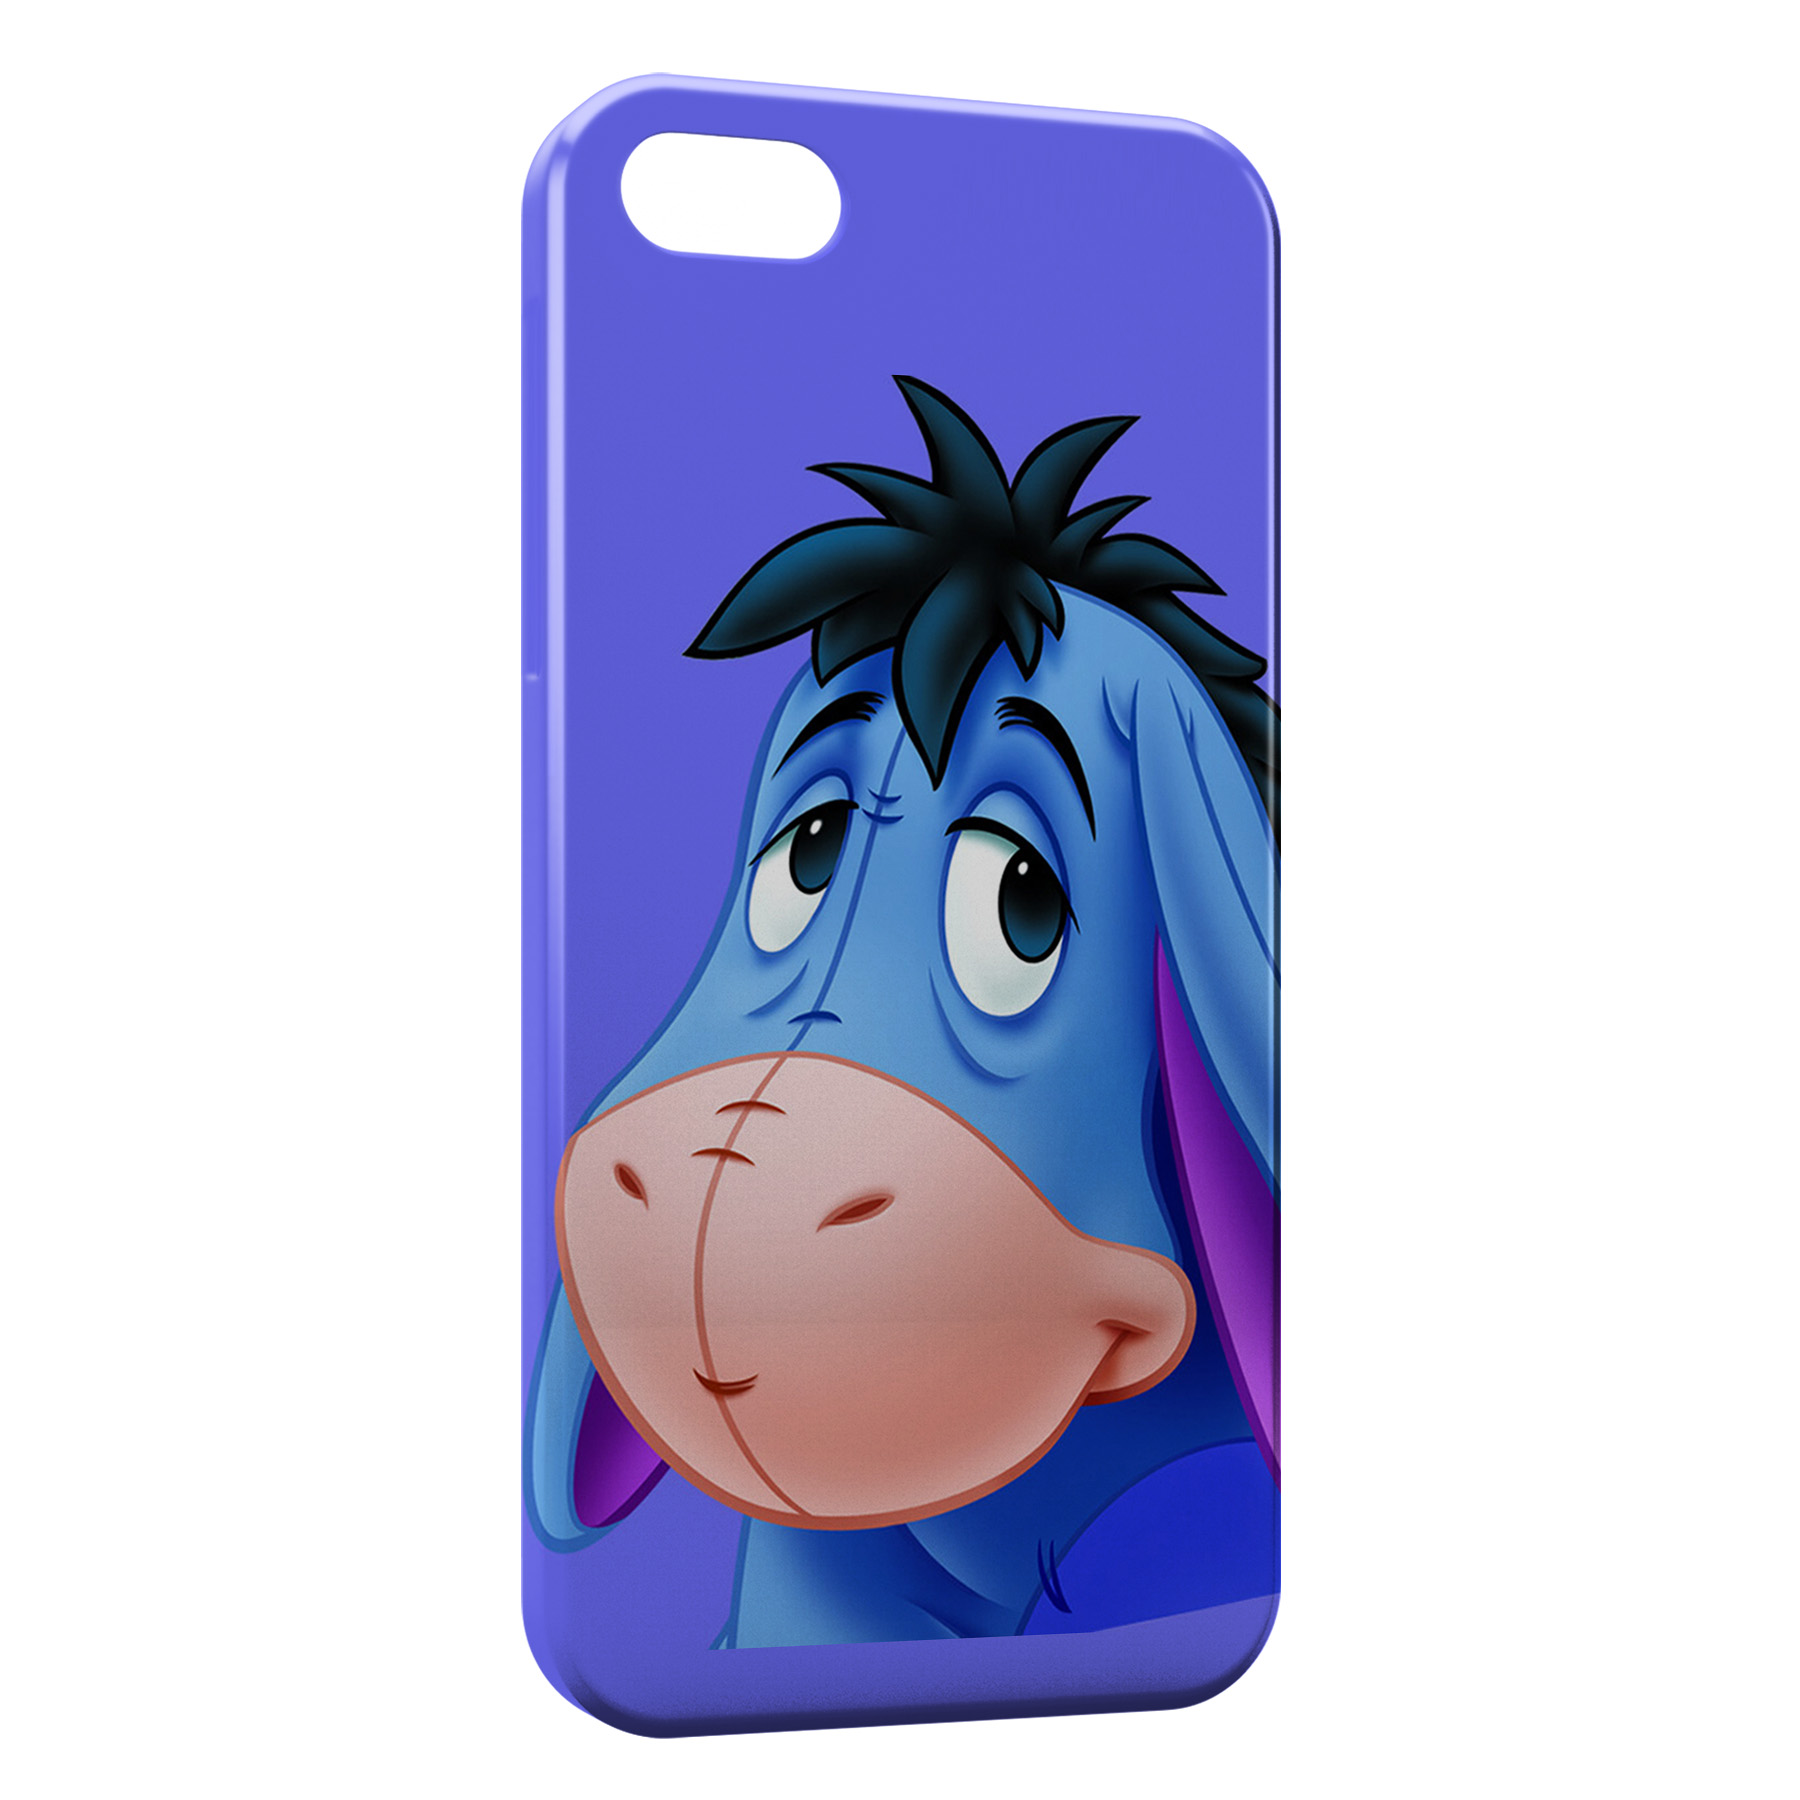 coque iphone 8 plus disney bourriquet